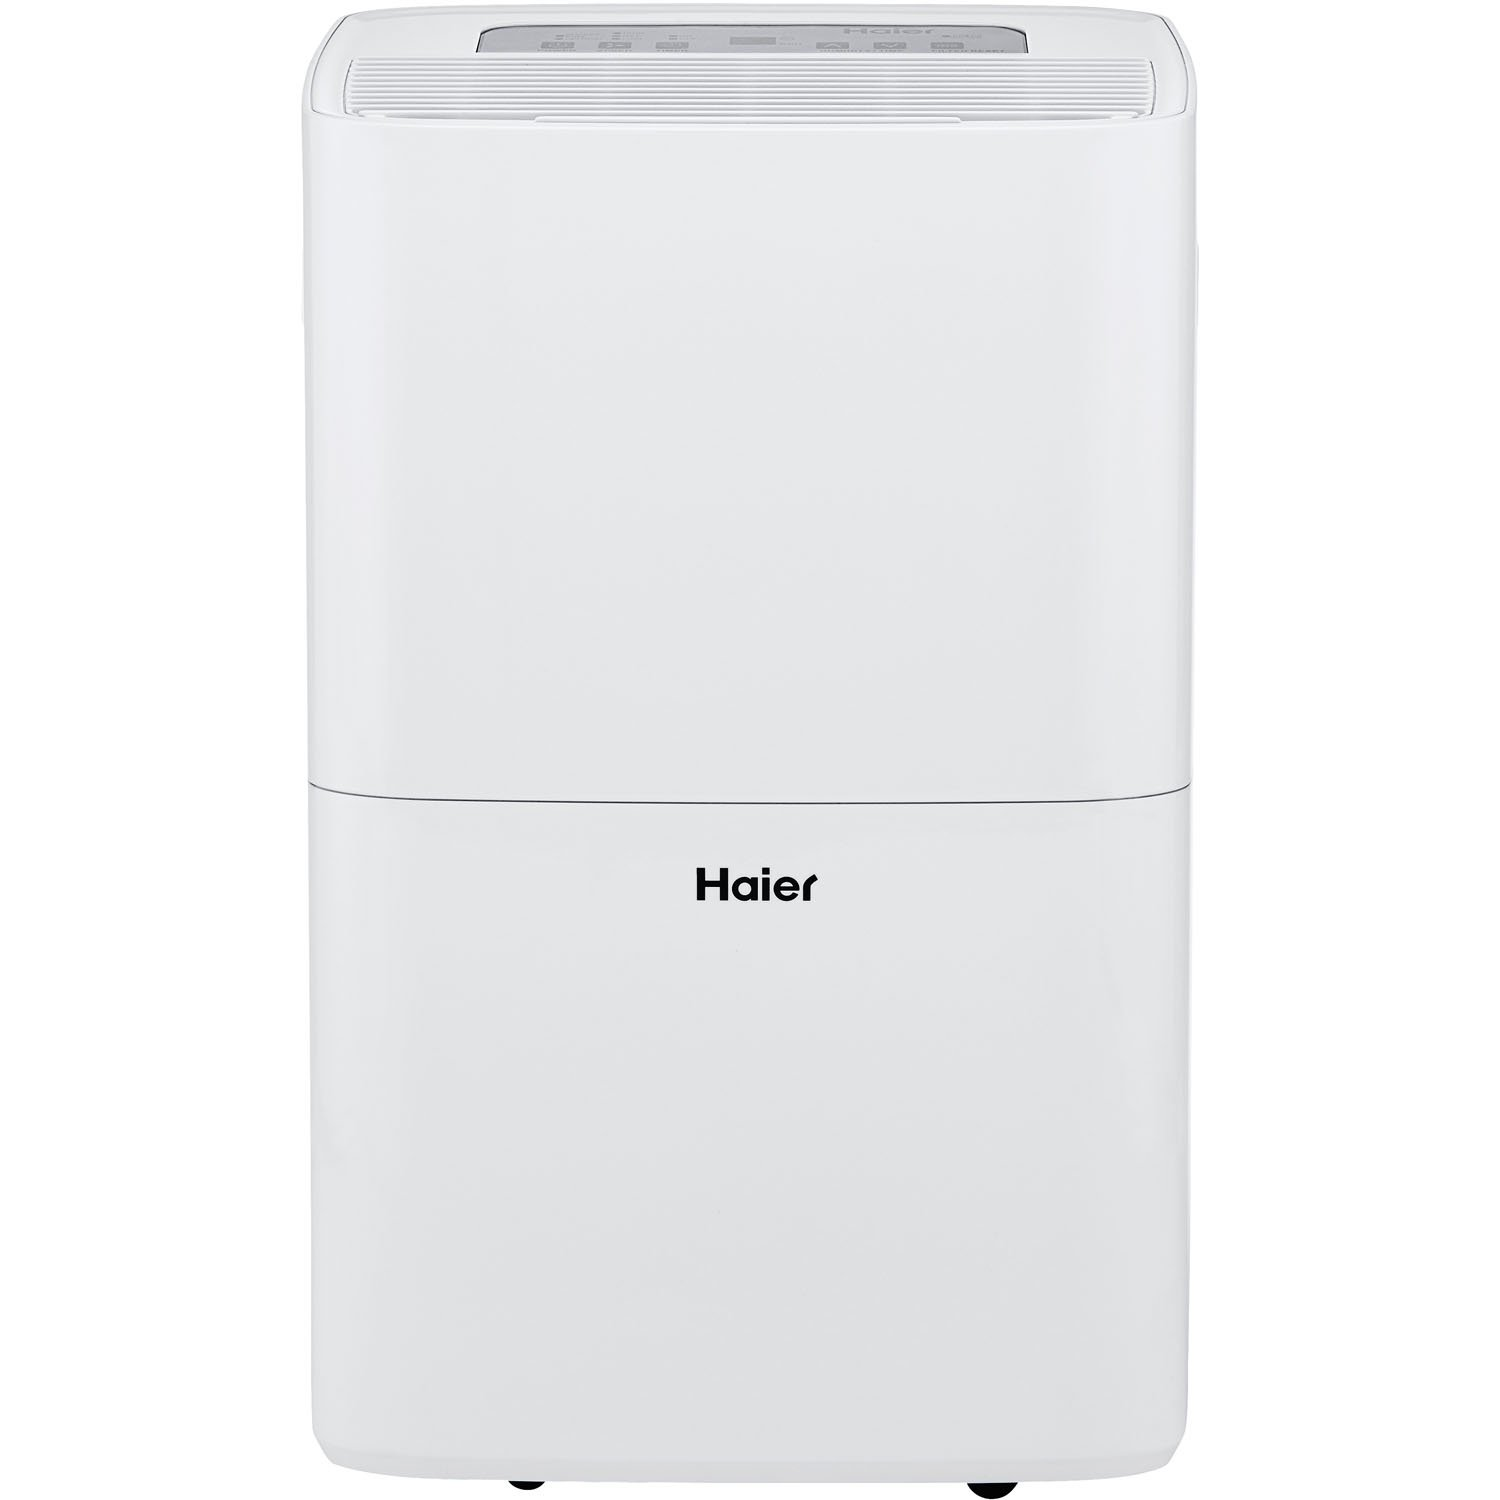 Haier Energy Star 70 Pt. Dehumidifier with Built-in Pump